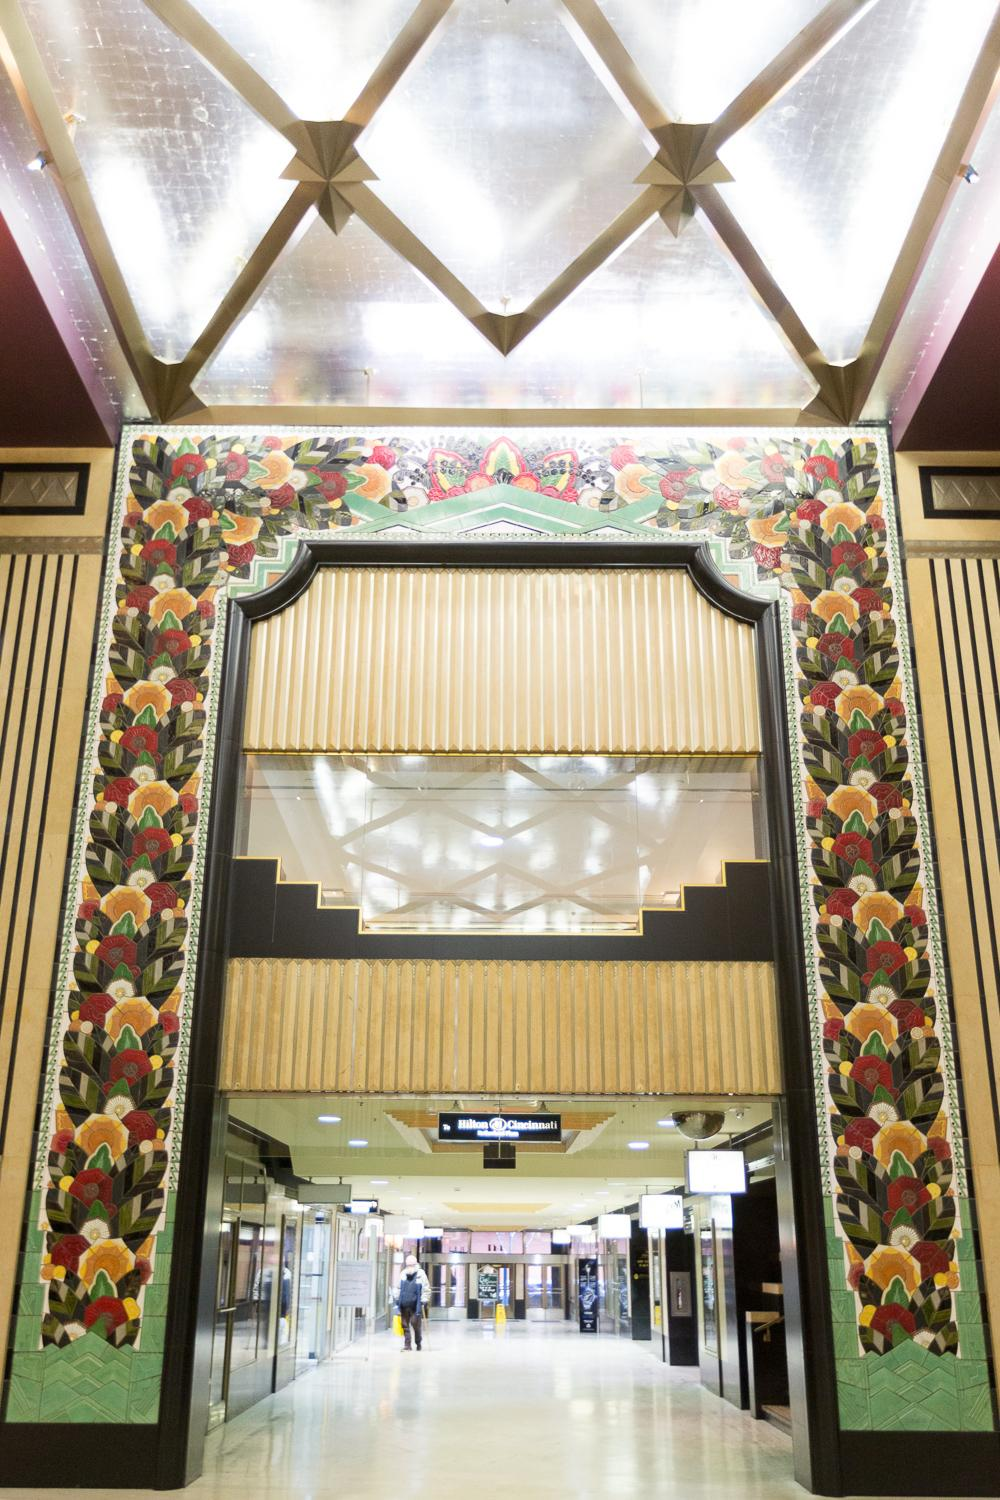 The Rookwood tile entry way to the lower portion of the Hilton Netherland from Carew Tower. (Image: Daniel Smyth Photography)